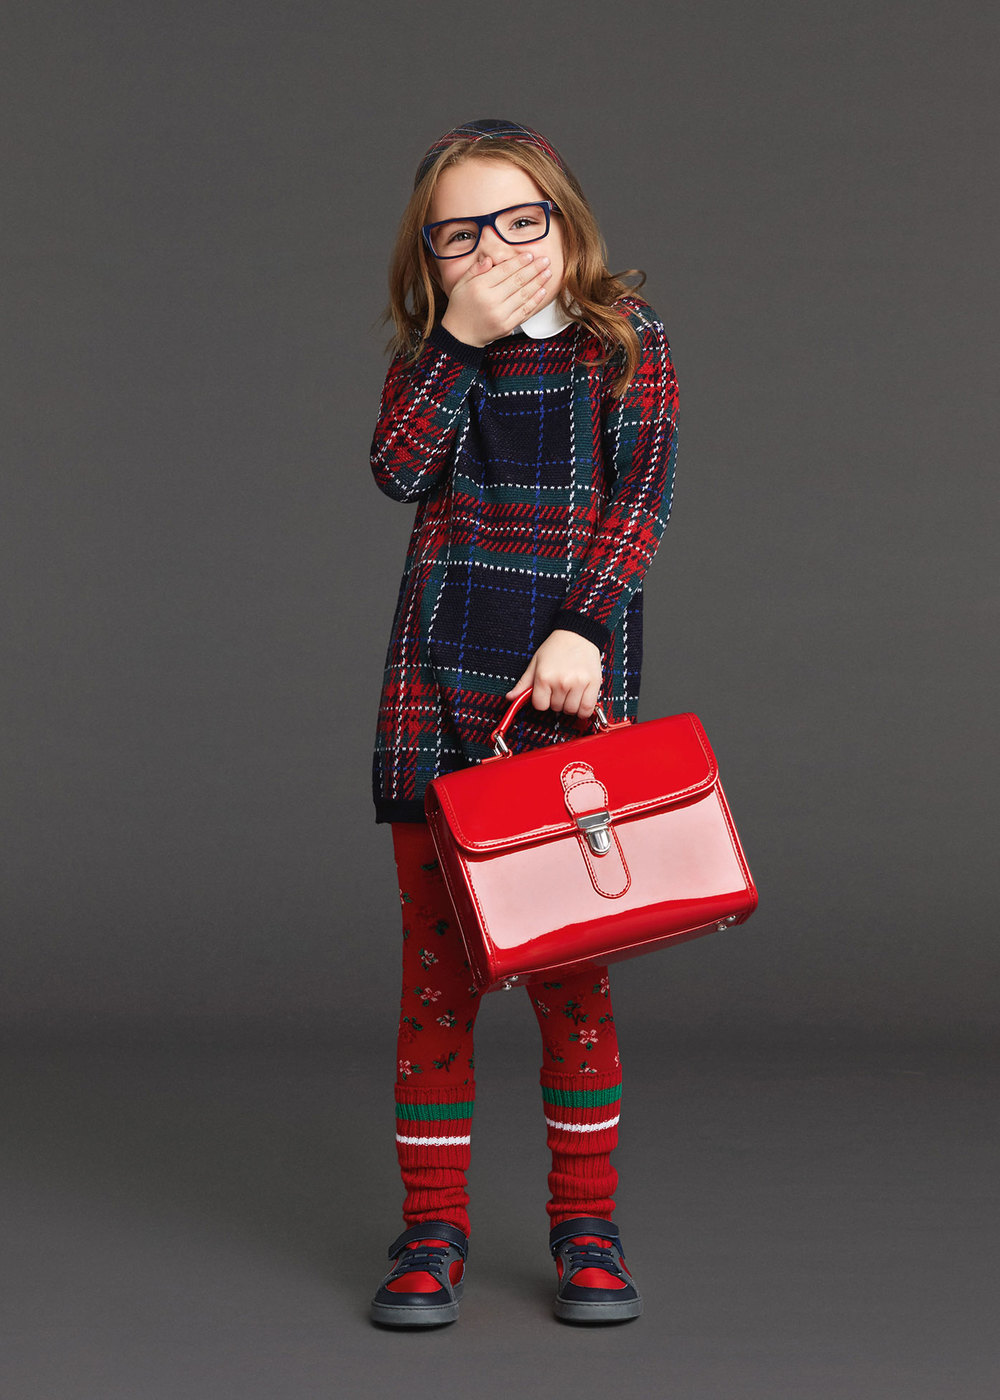 dolce-and-gabbana-winter-2016-child-collection-126-zoom.jpg